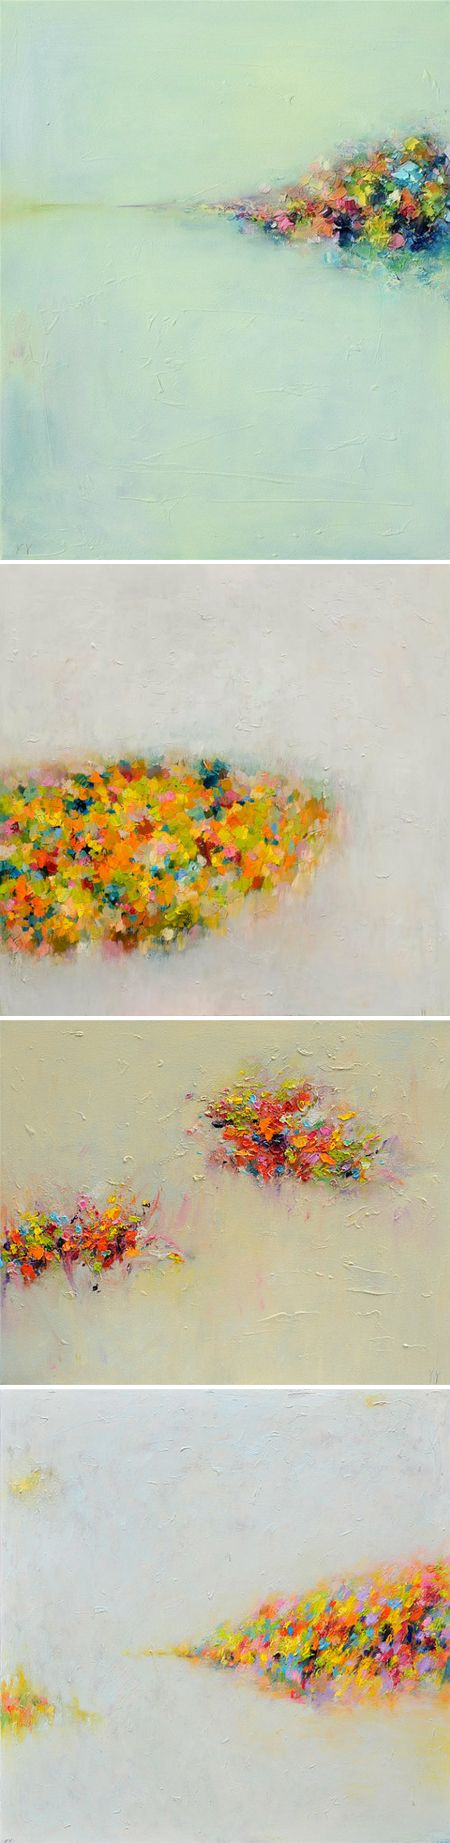 These stunning {yet simple} abstract oil landscapes, by Toronto based artist Yangyang Pan, make me want to rake up a giant pile of neon leaves, get a running start, and jump right in! The composition, the colors, and the fact that they're at least 4 feet wide … sigh. Where's my rake?